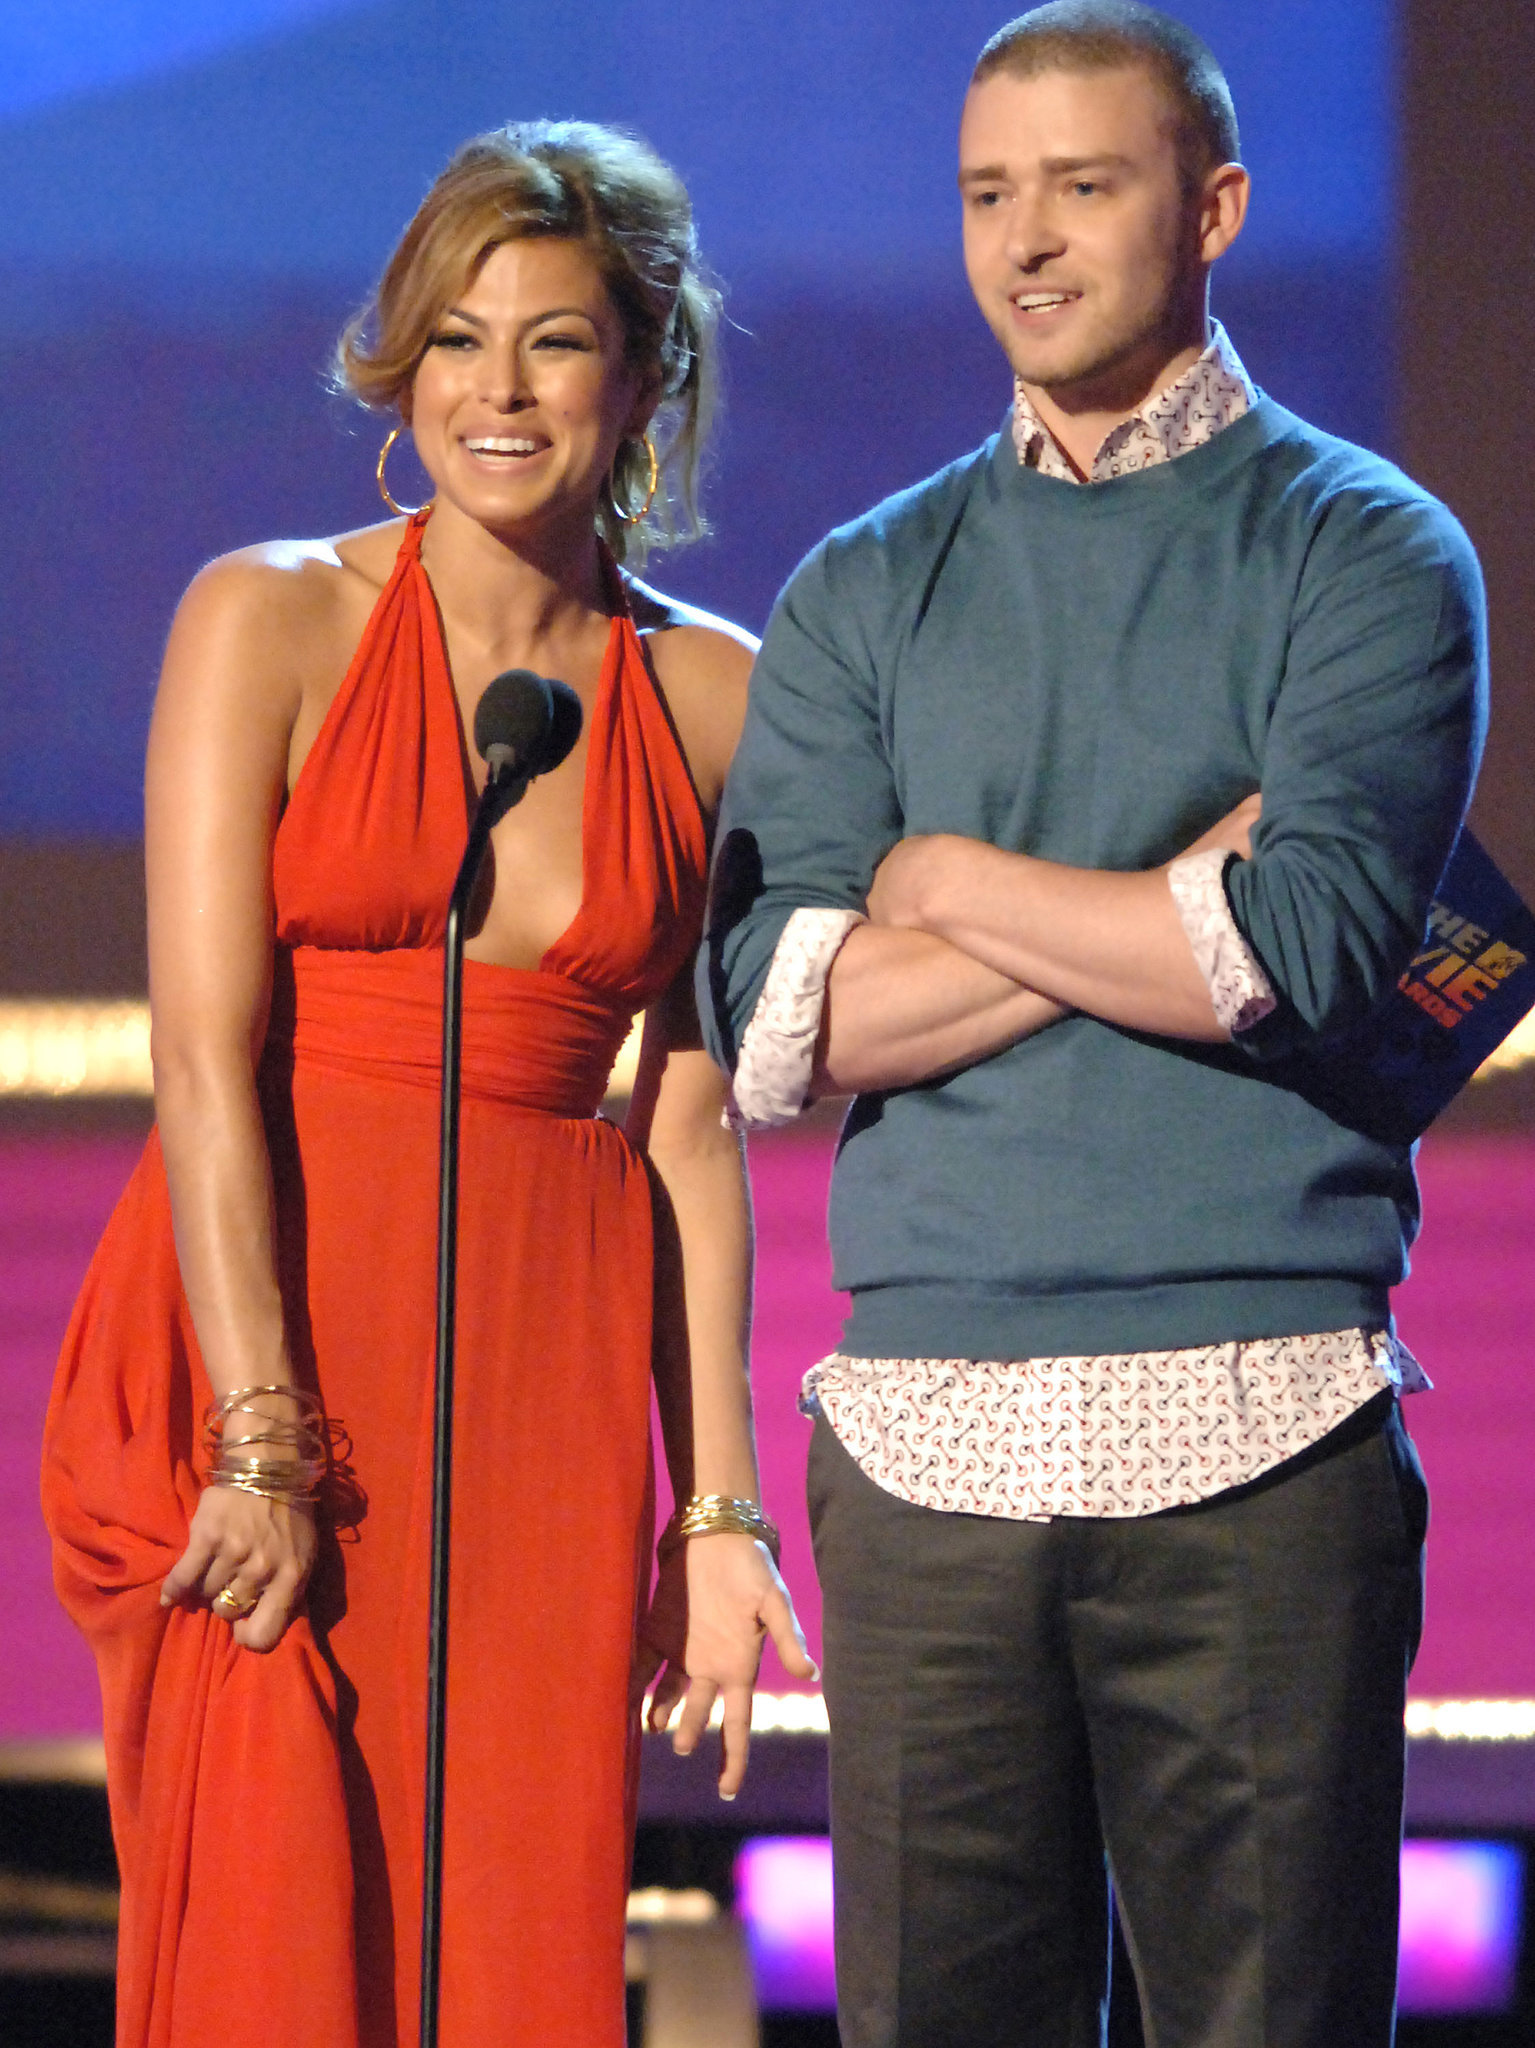 Eva Mendes was in good company with Justin to present the June 2006 MTV Movie Award for best kiss.